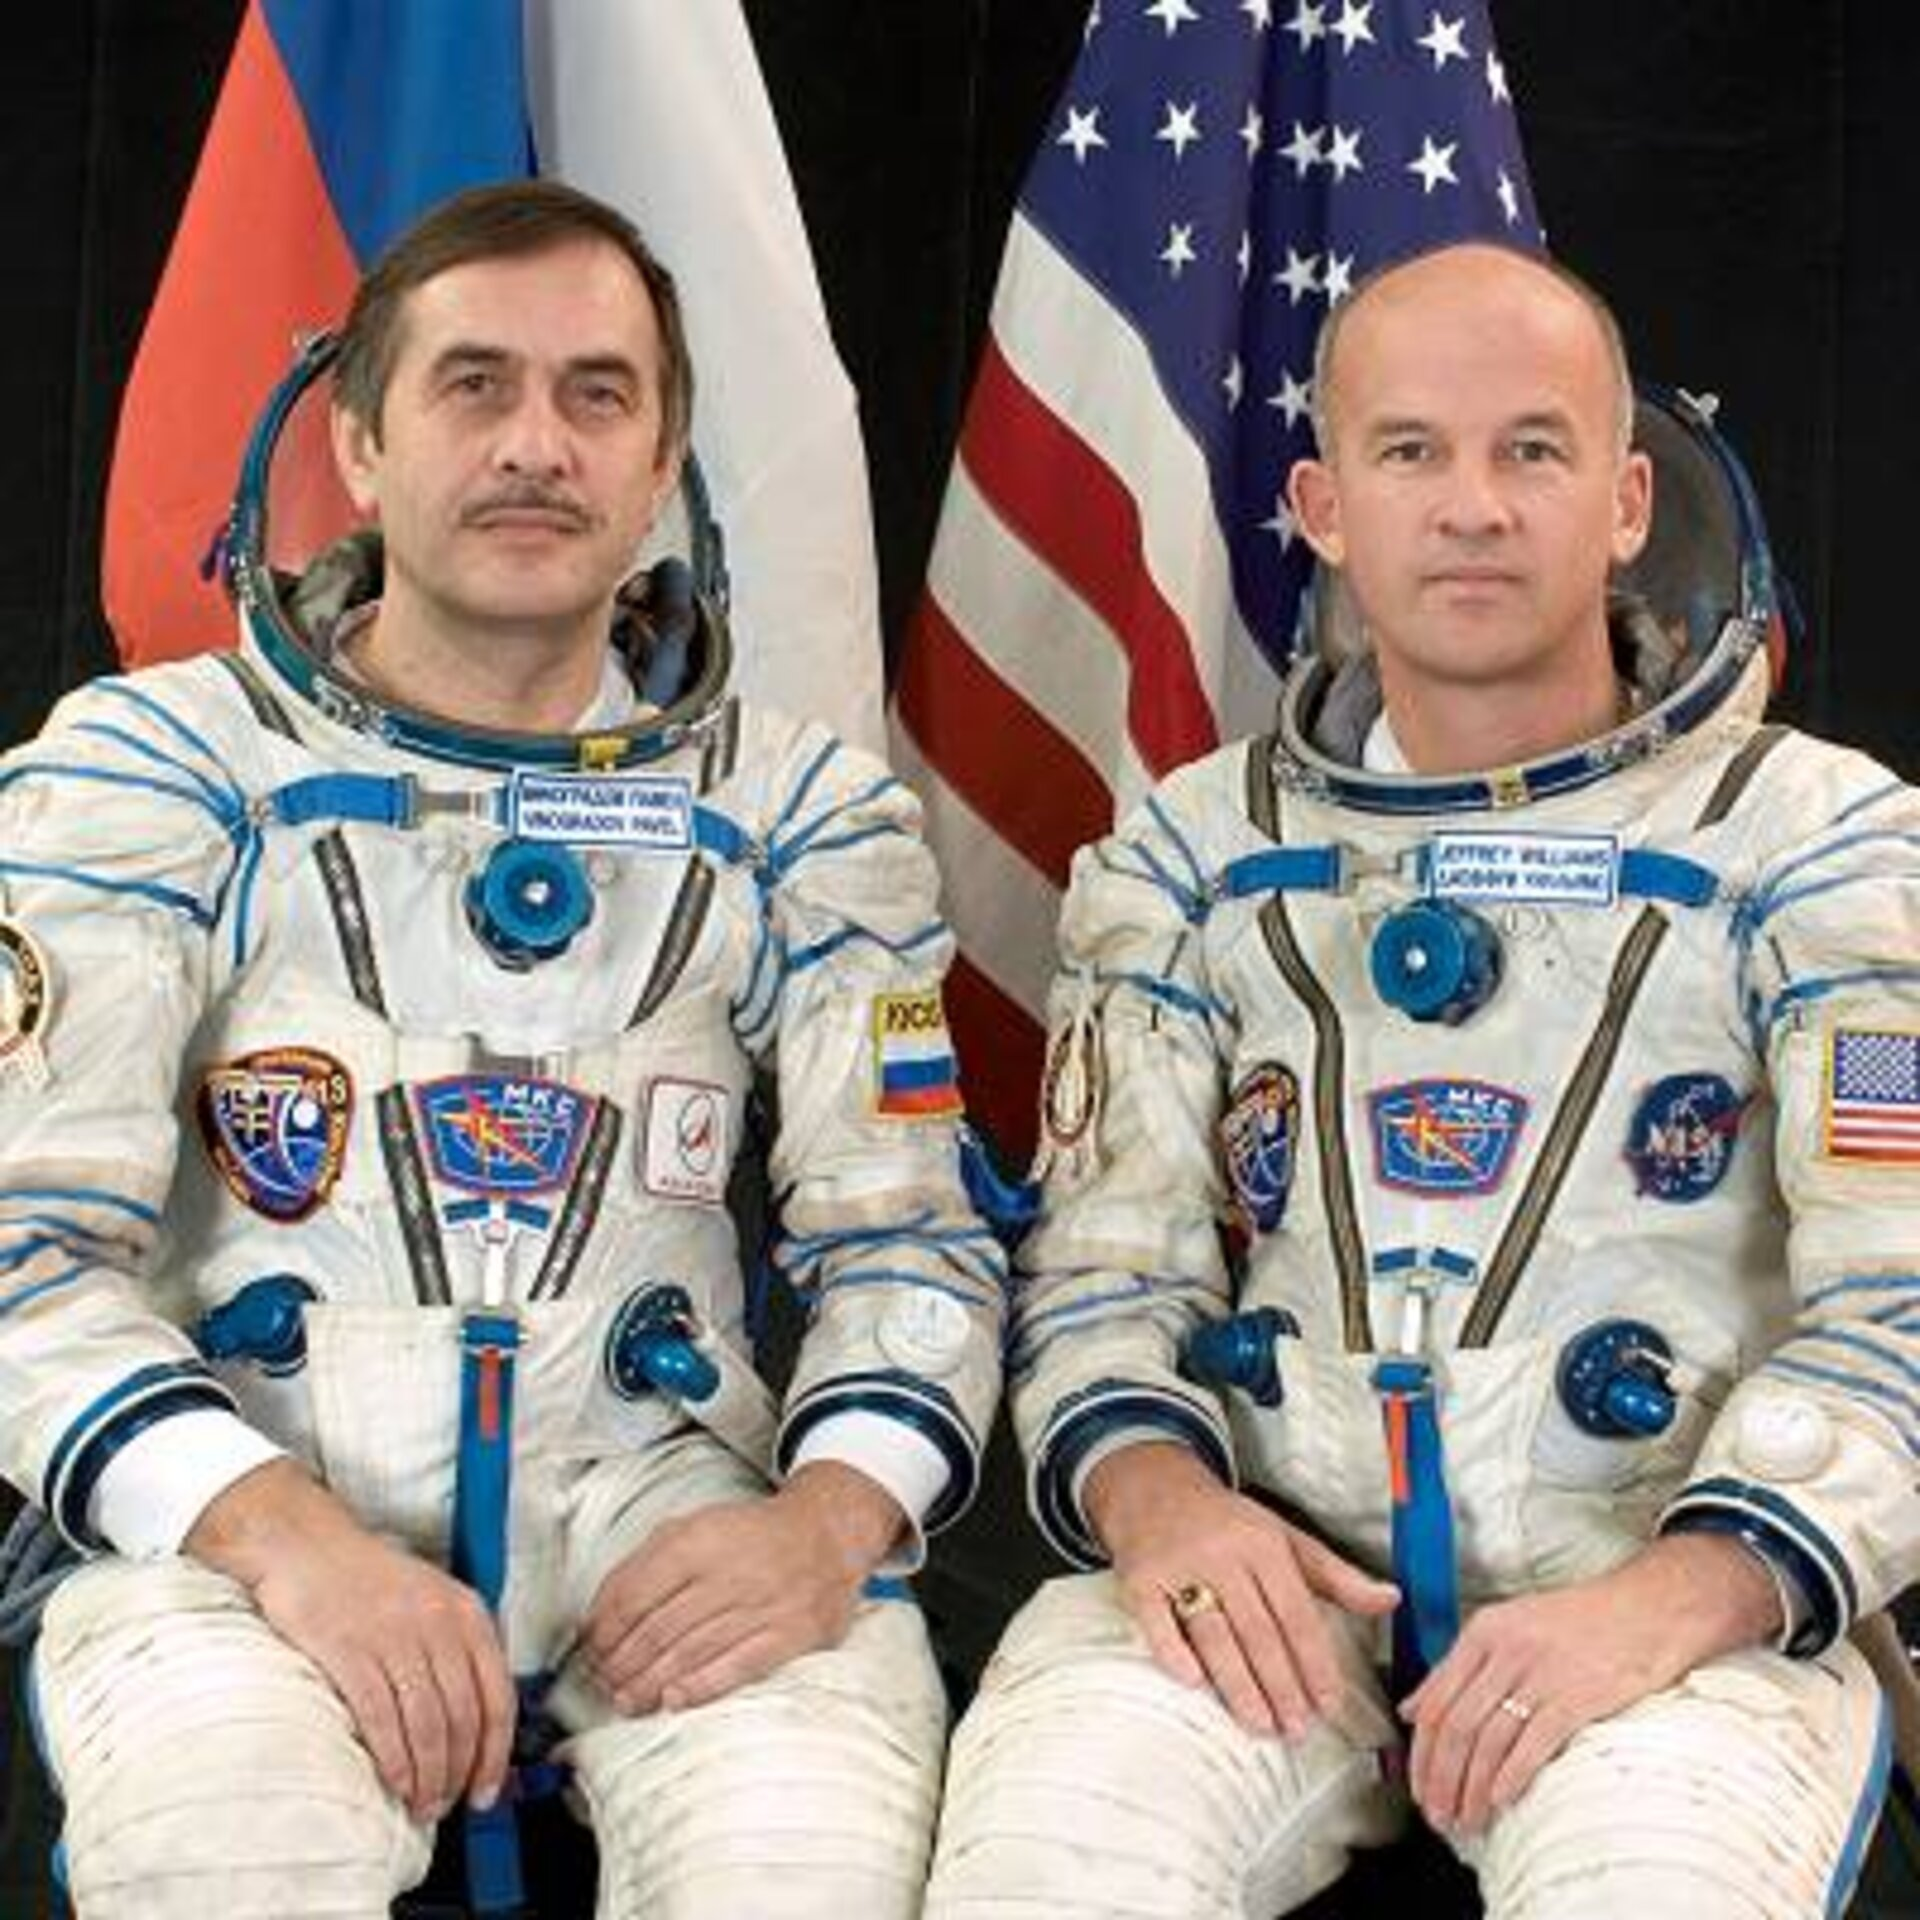 ISS Expedition 13 crew - Pavel Vinogradov and Jeffrey N. Williams